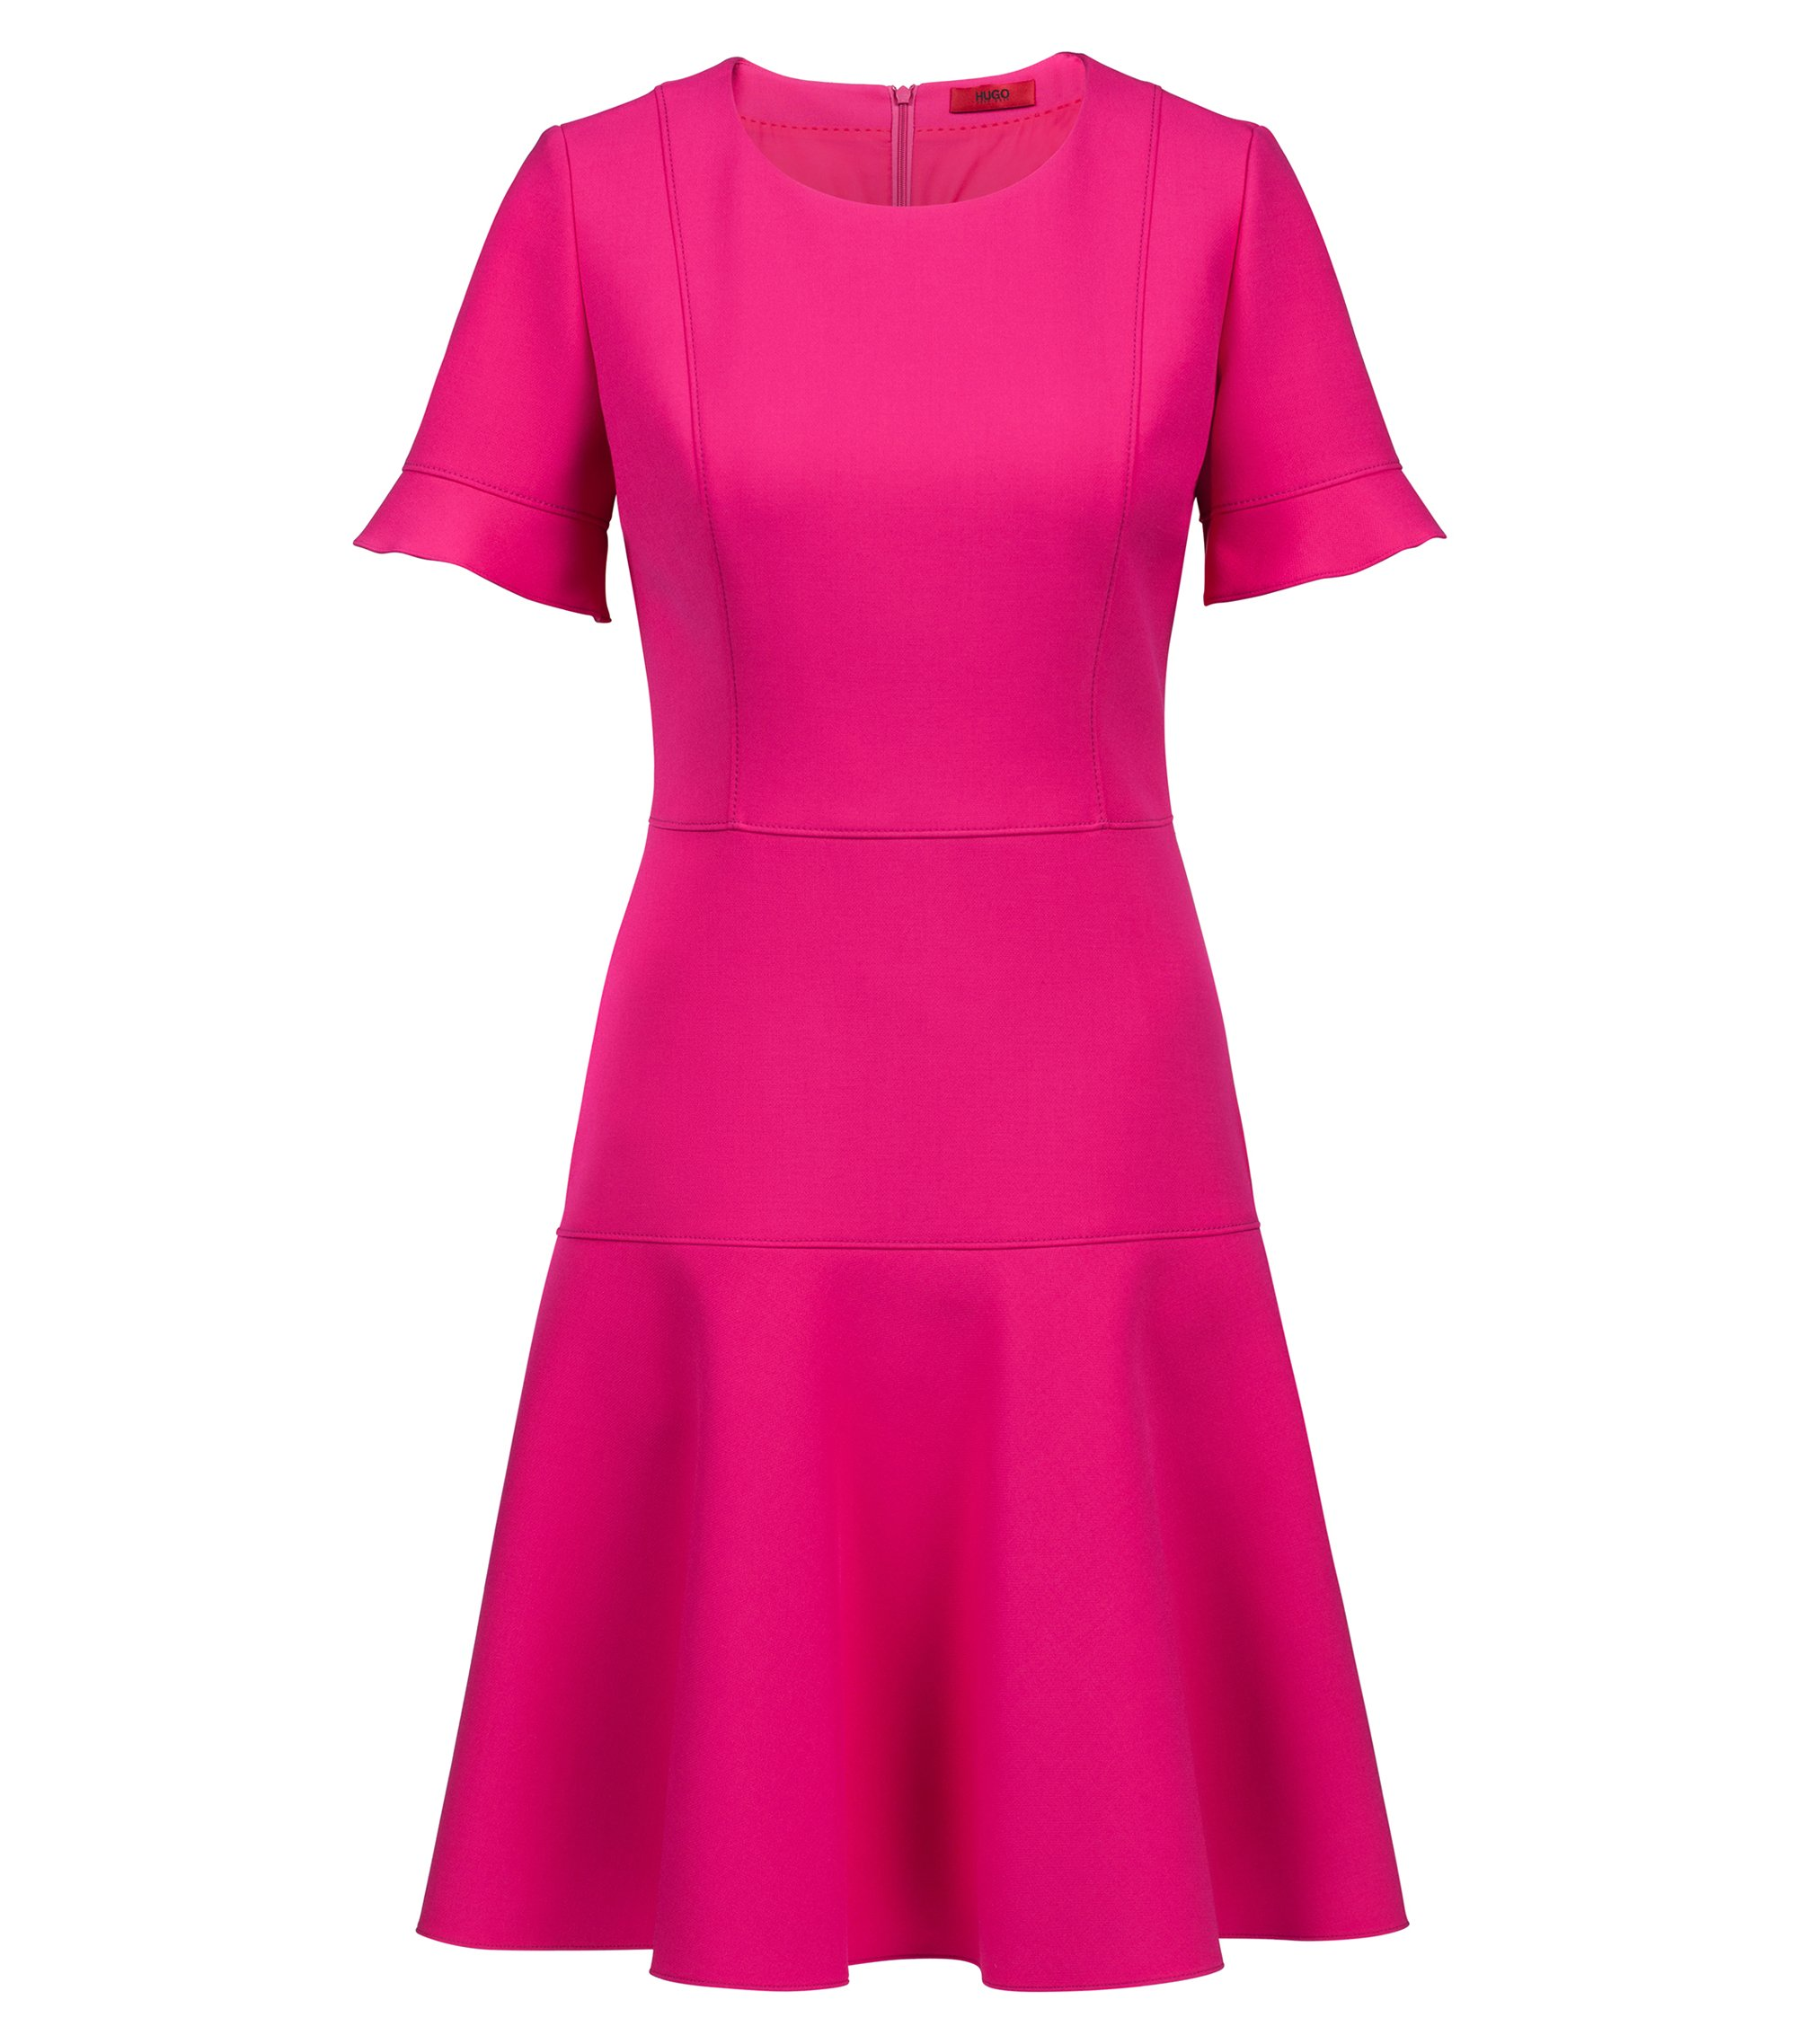 Short-sleeved dress in stretch fabric with flared skirt, Pink